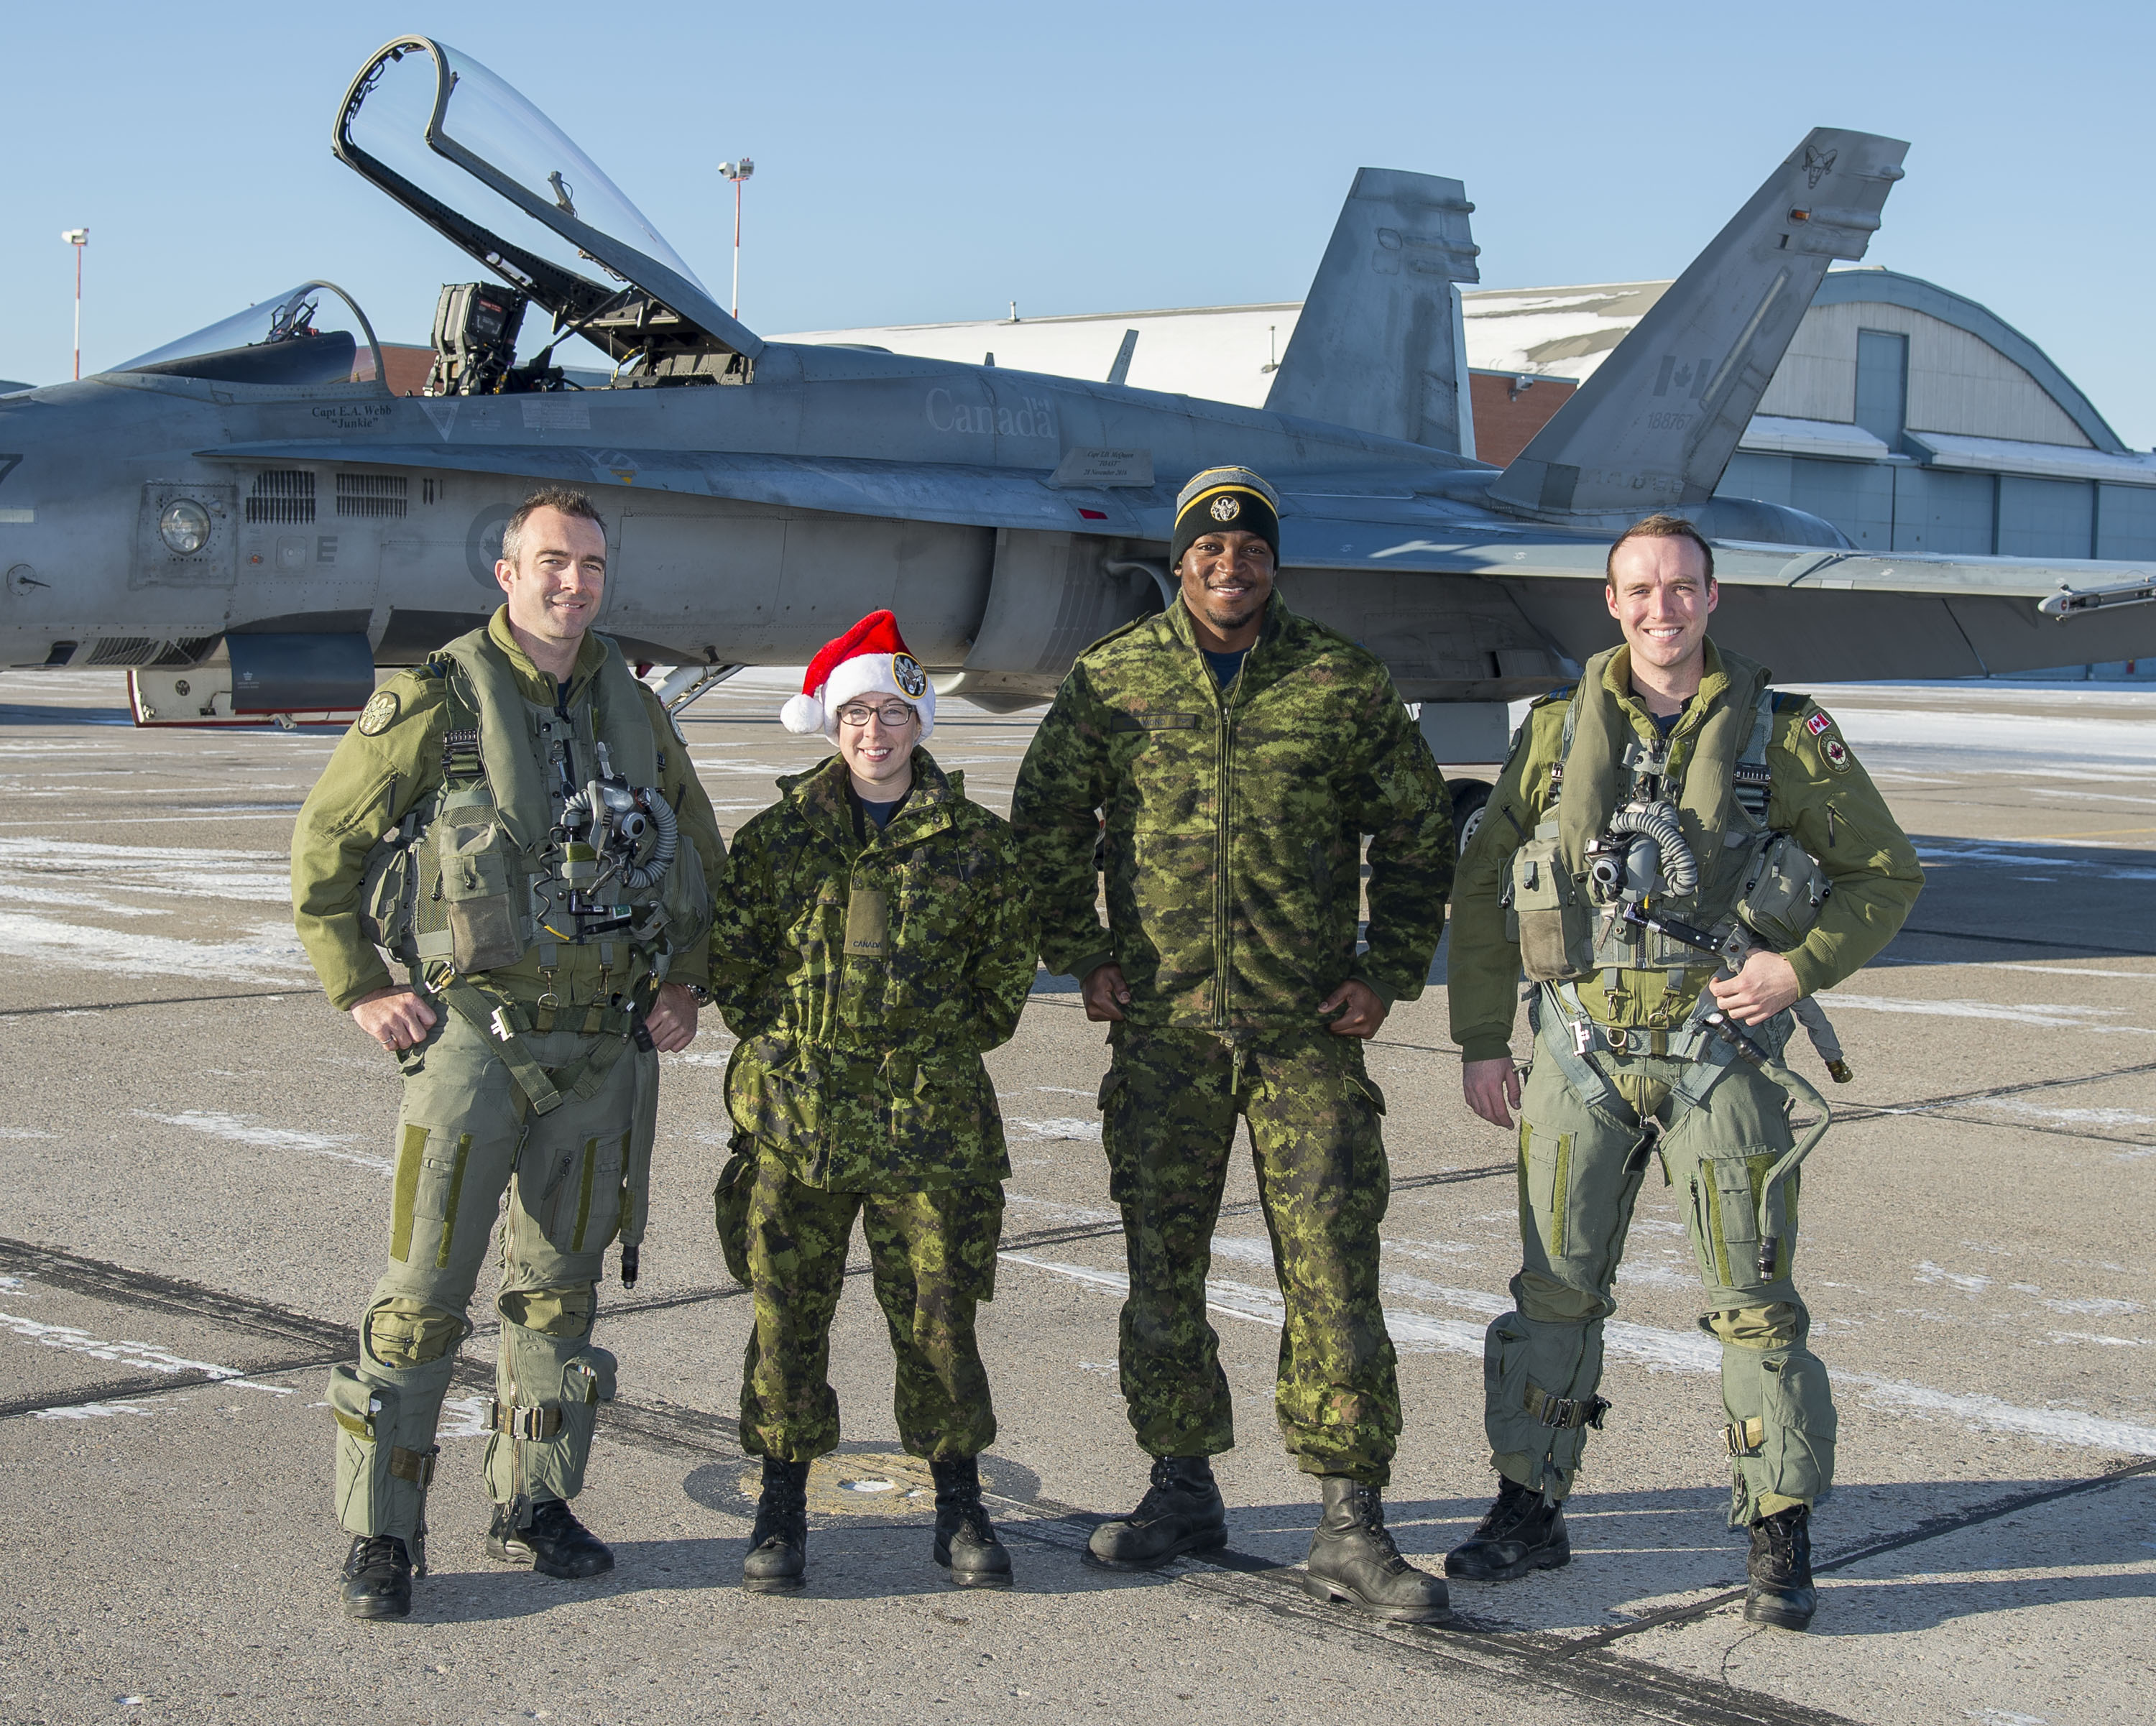 Two people wearing olive green flying suits and two wearing disruptive pattern green military uniforms, one wearing a red Santa Claus hat, stand outdoors in front of a gray fighter jet.